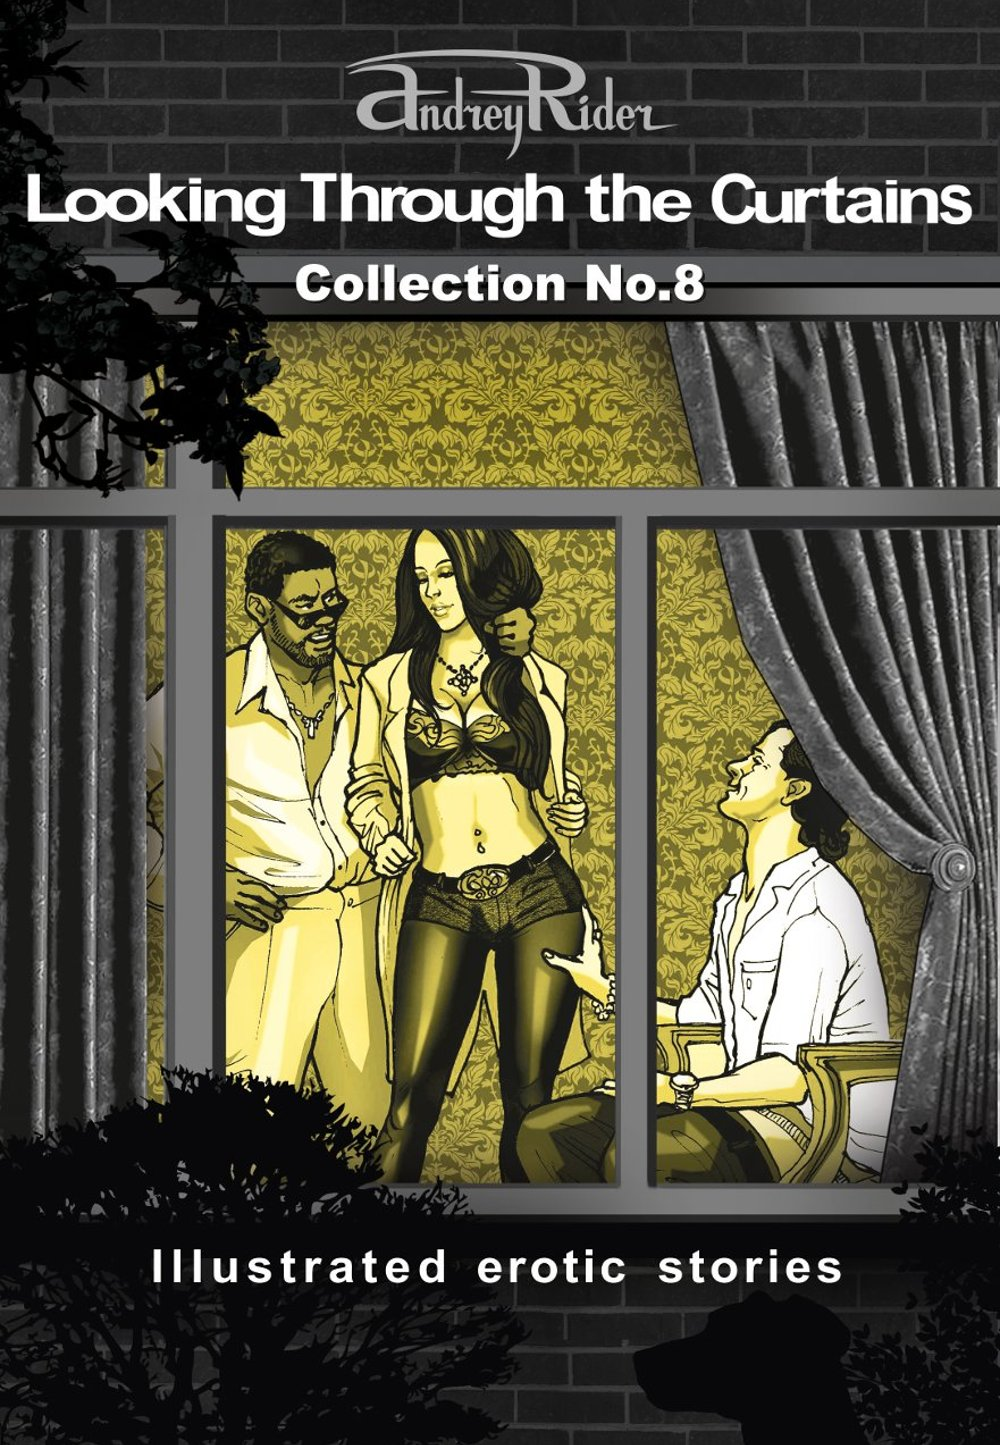 Collection of Erotic Stories No.8